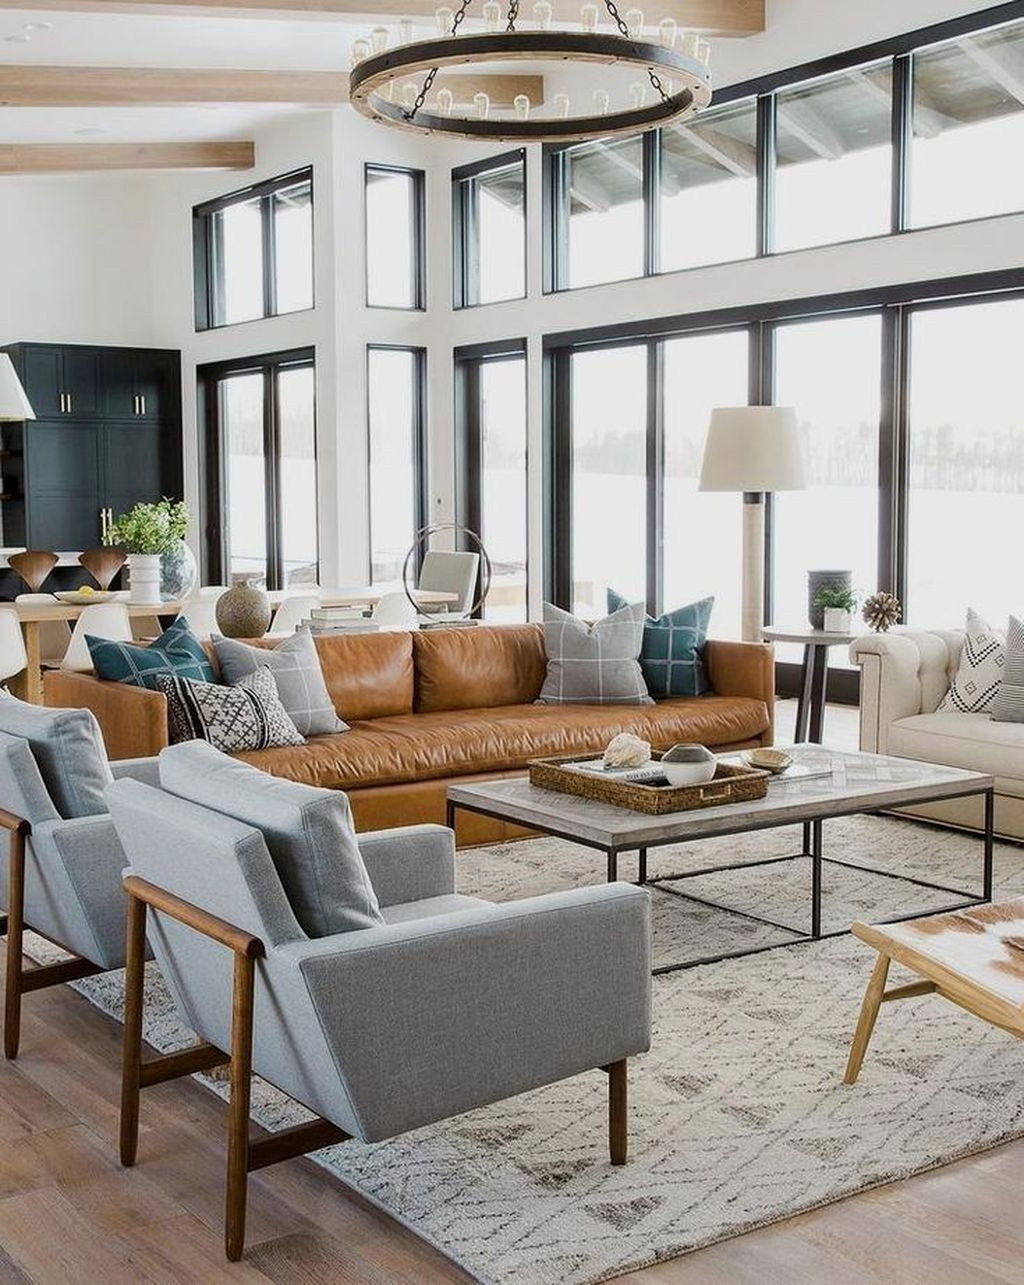 65 Great Modern Interior Design Ideas To Make Your Living Room Look Beautiful Hoomdesign 6: 30+ Enchanting Lighting Design Ideas For Living Room In Your House